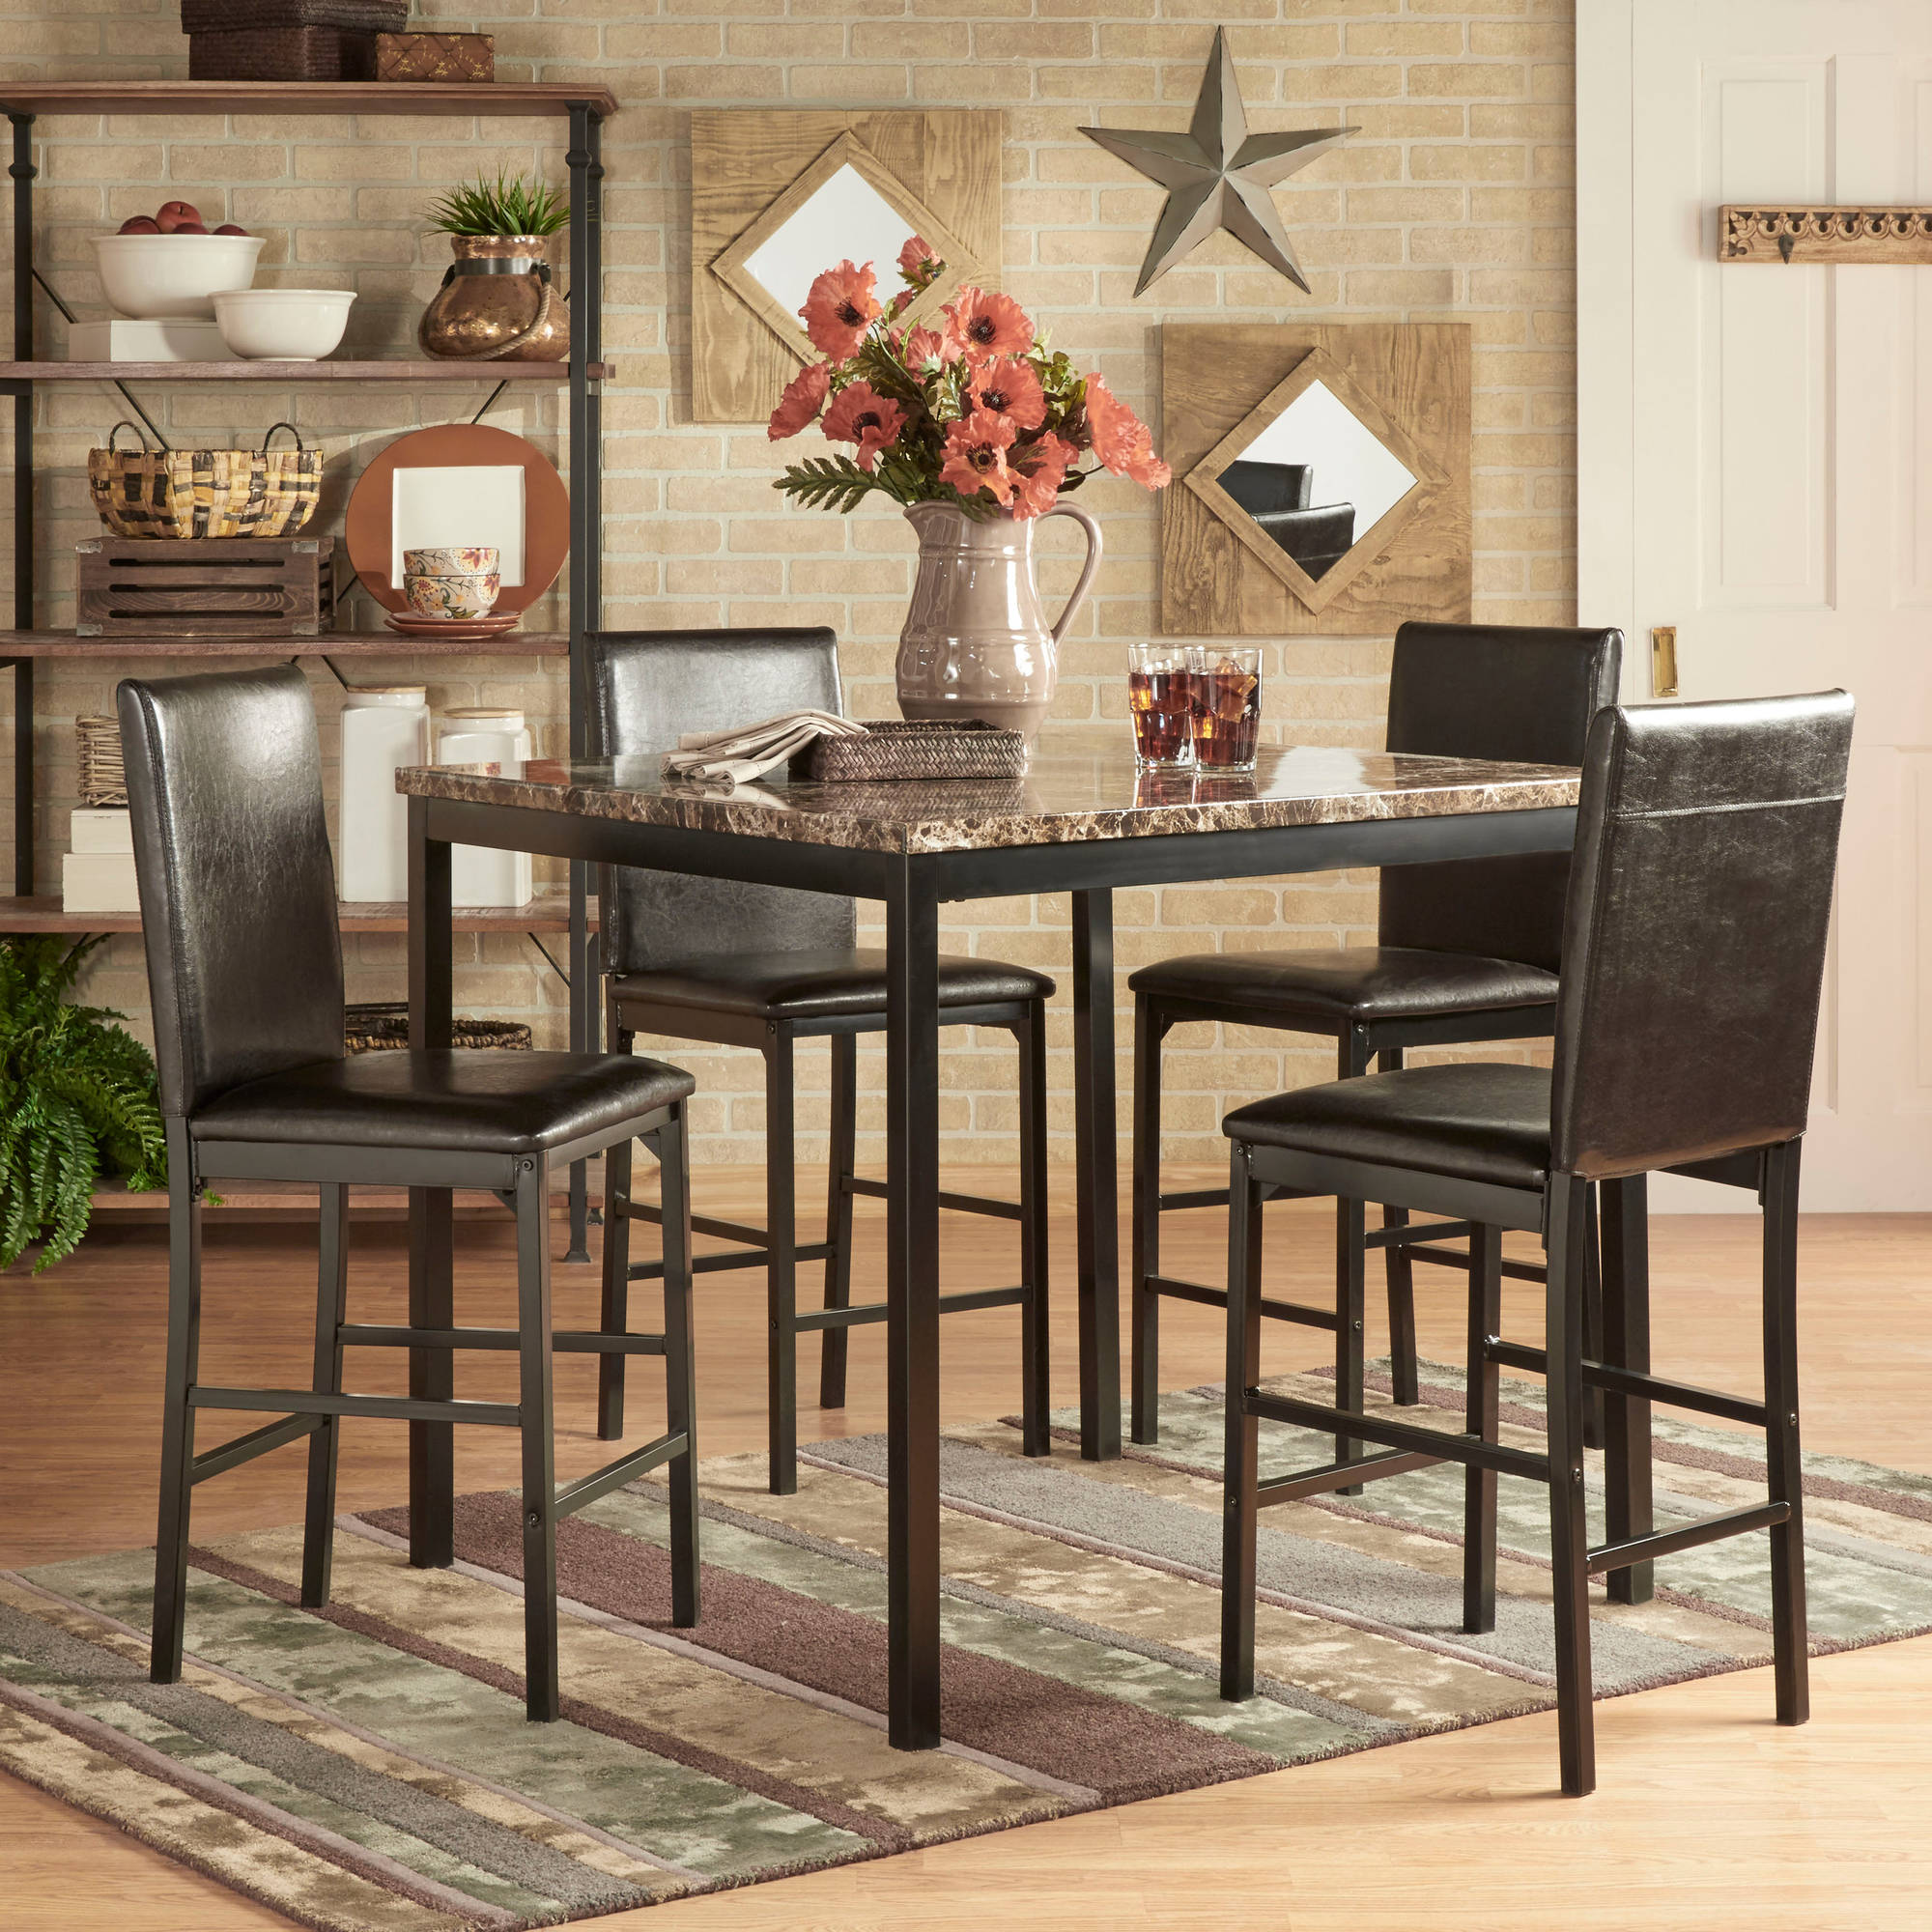 Chelsea Lane Declan 5 Piece Metal Counter Height Dining Set